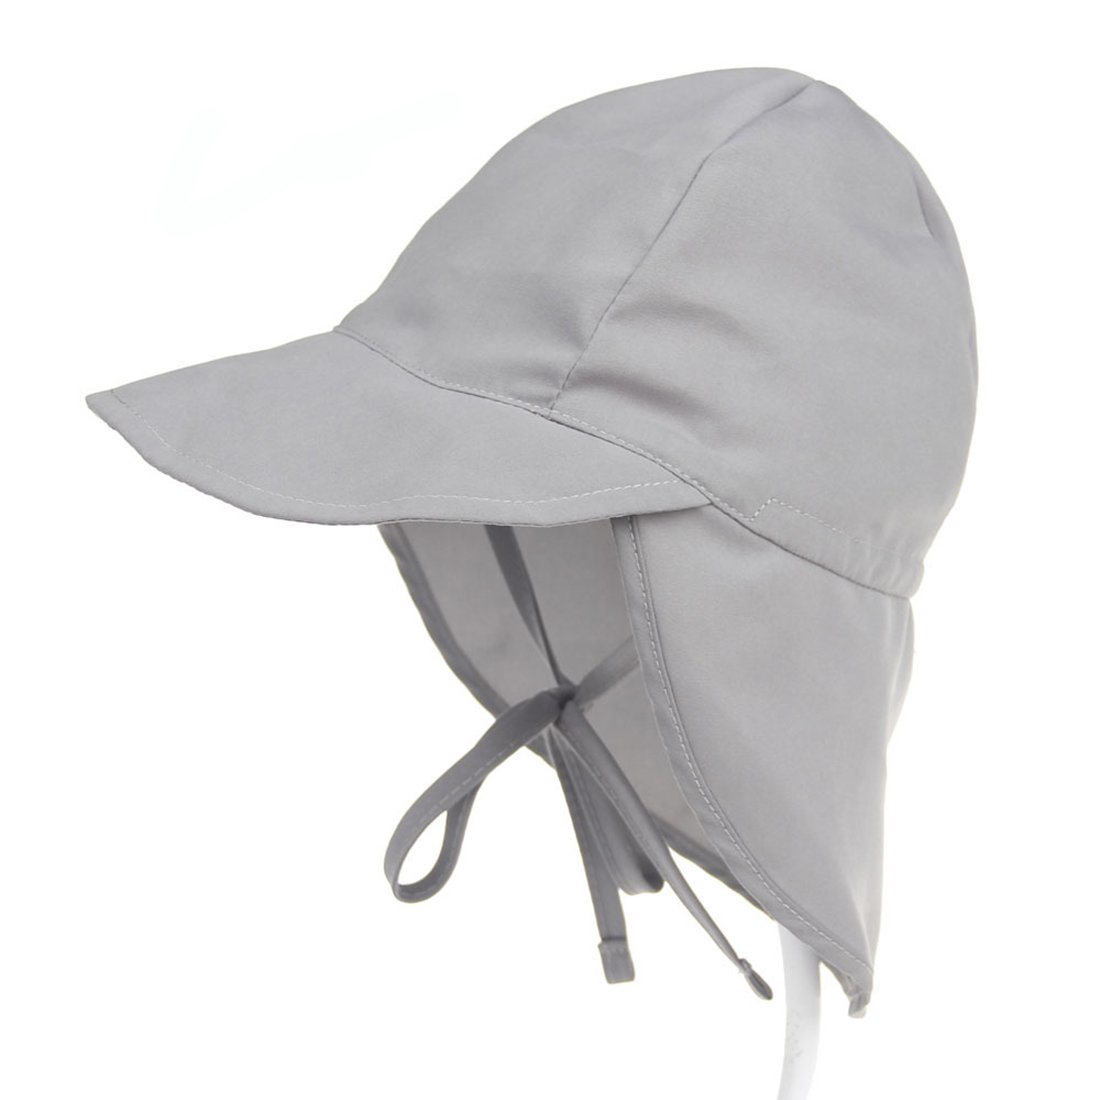 Adjustable Flap Hat Neck Protection Summer Visor Cap Breathable Fast Drying Beach Hat For Babies and Toddlers Boomly Kids Sun Protection Hat UPF50